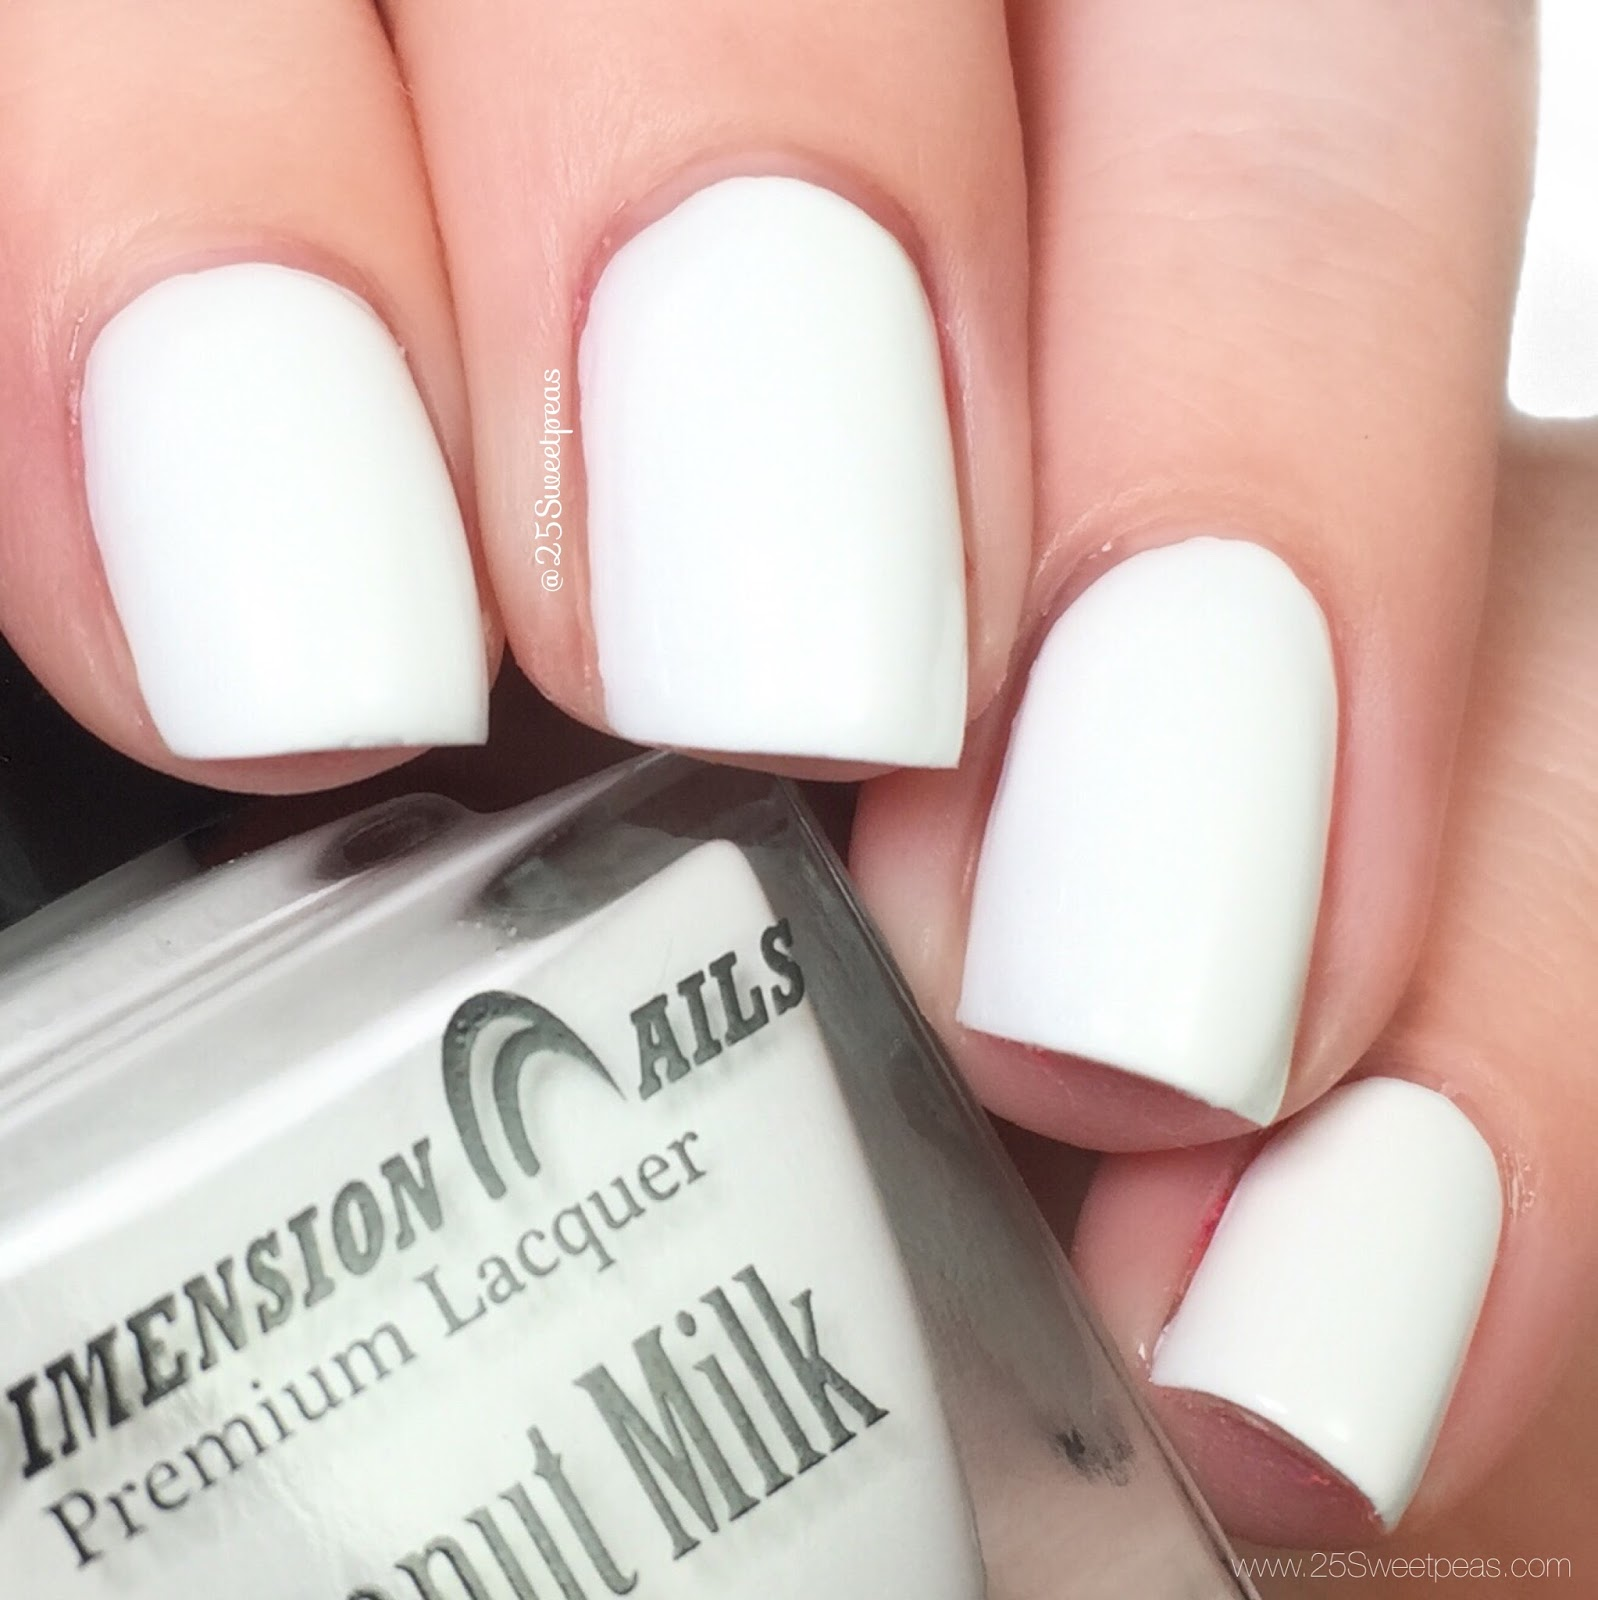 Dimension Nails Coconut Milk